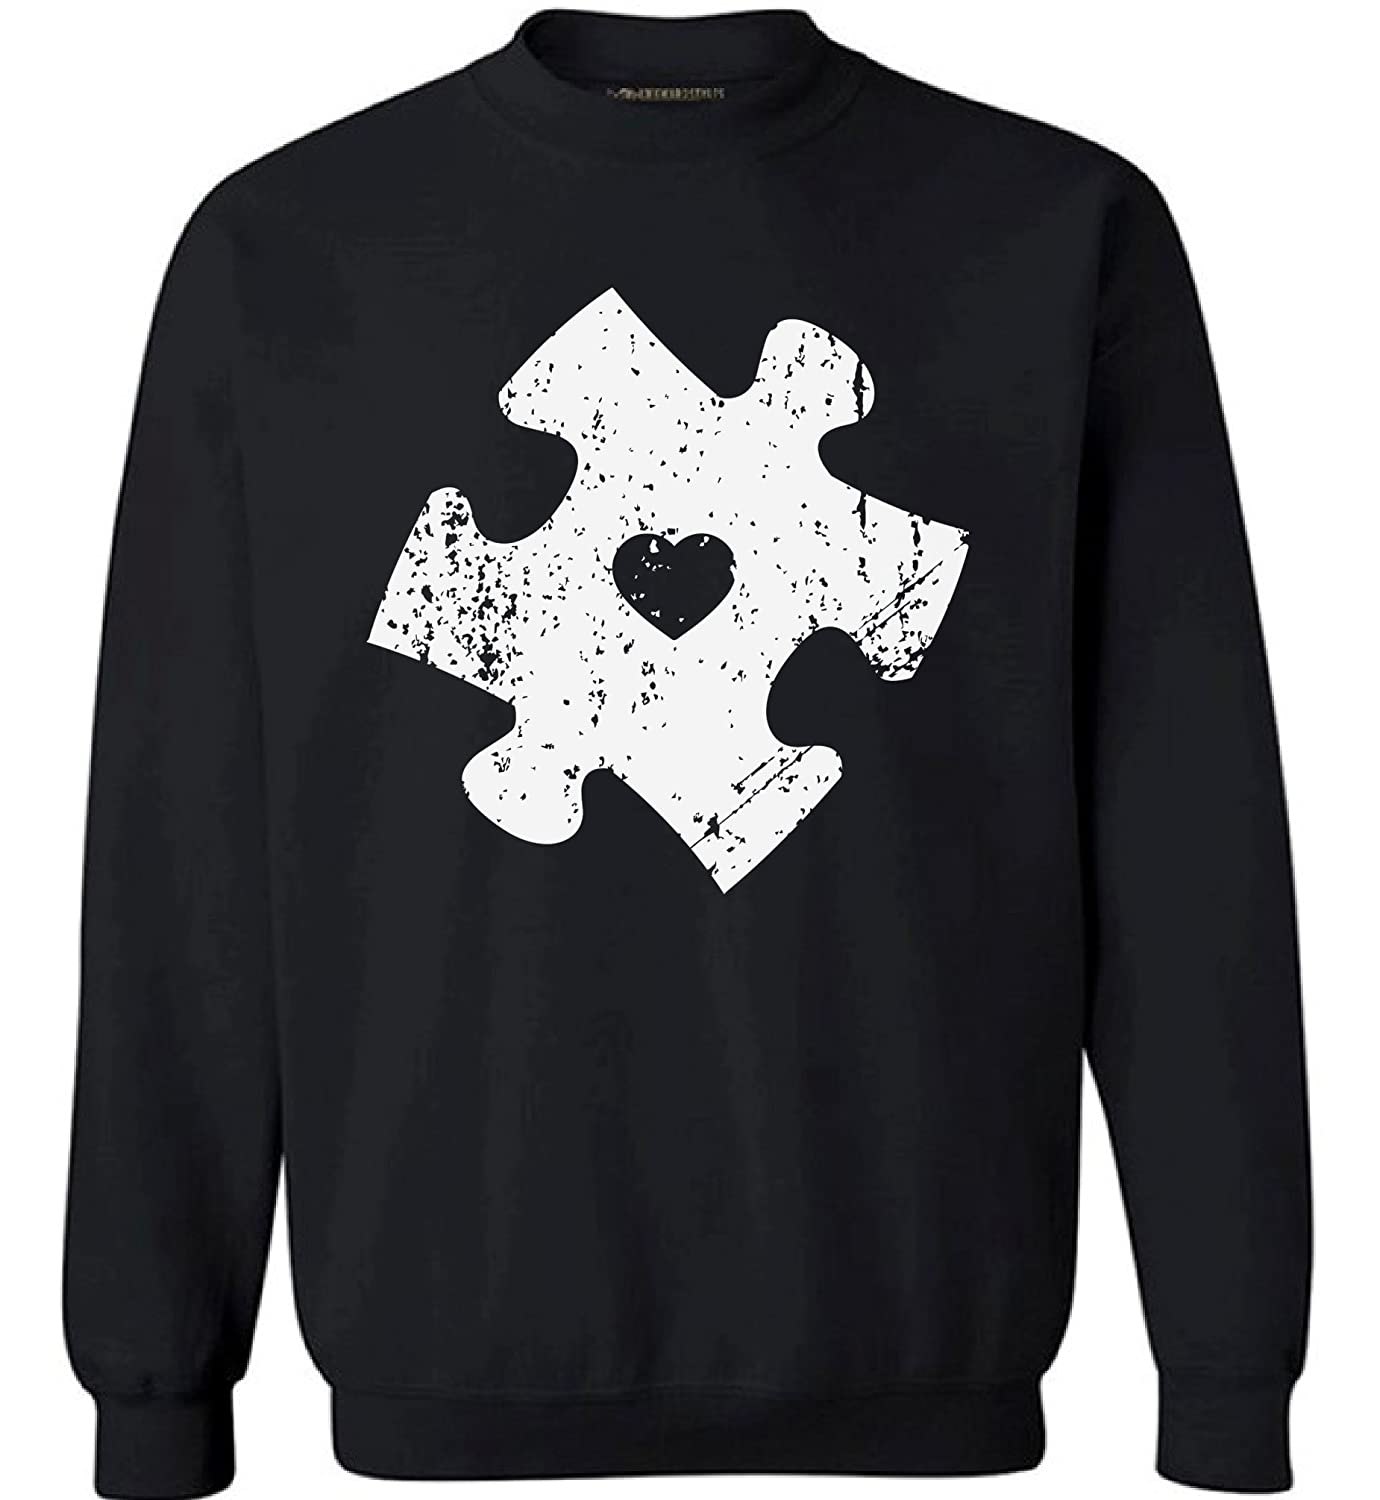 Awkward Styles Autism Awareness Sweatshirt Autism Puzzle Sweater Autism Month